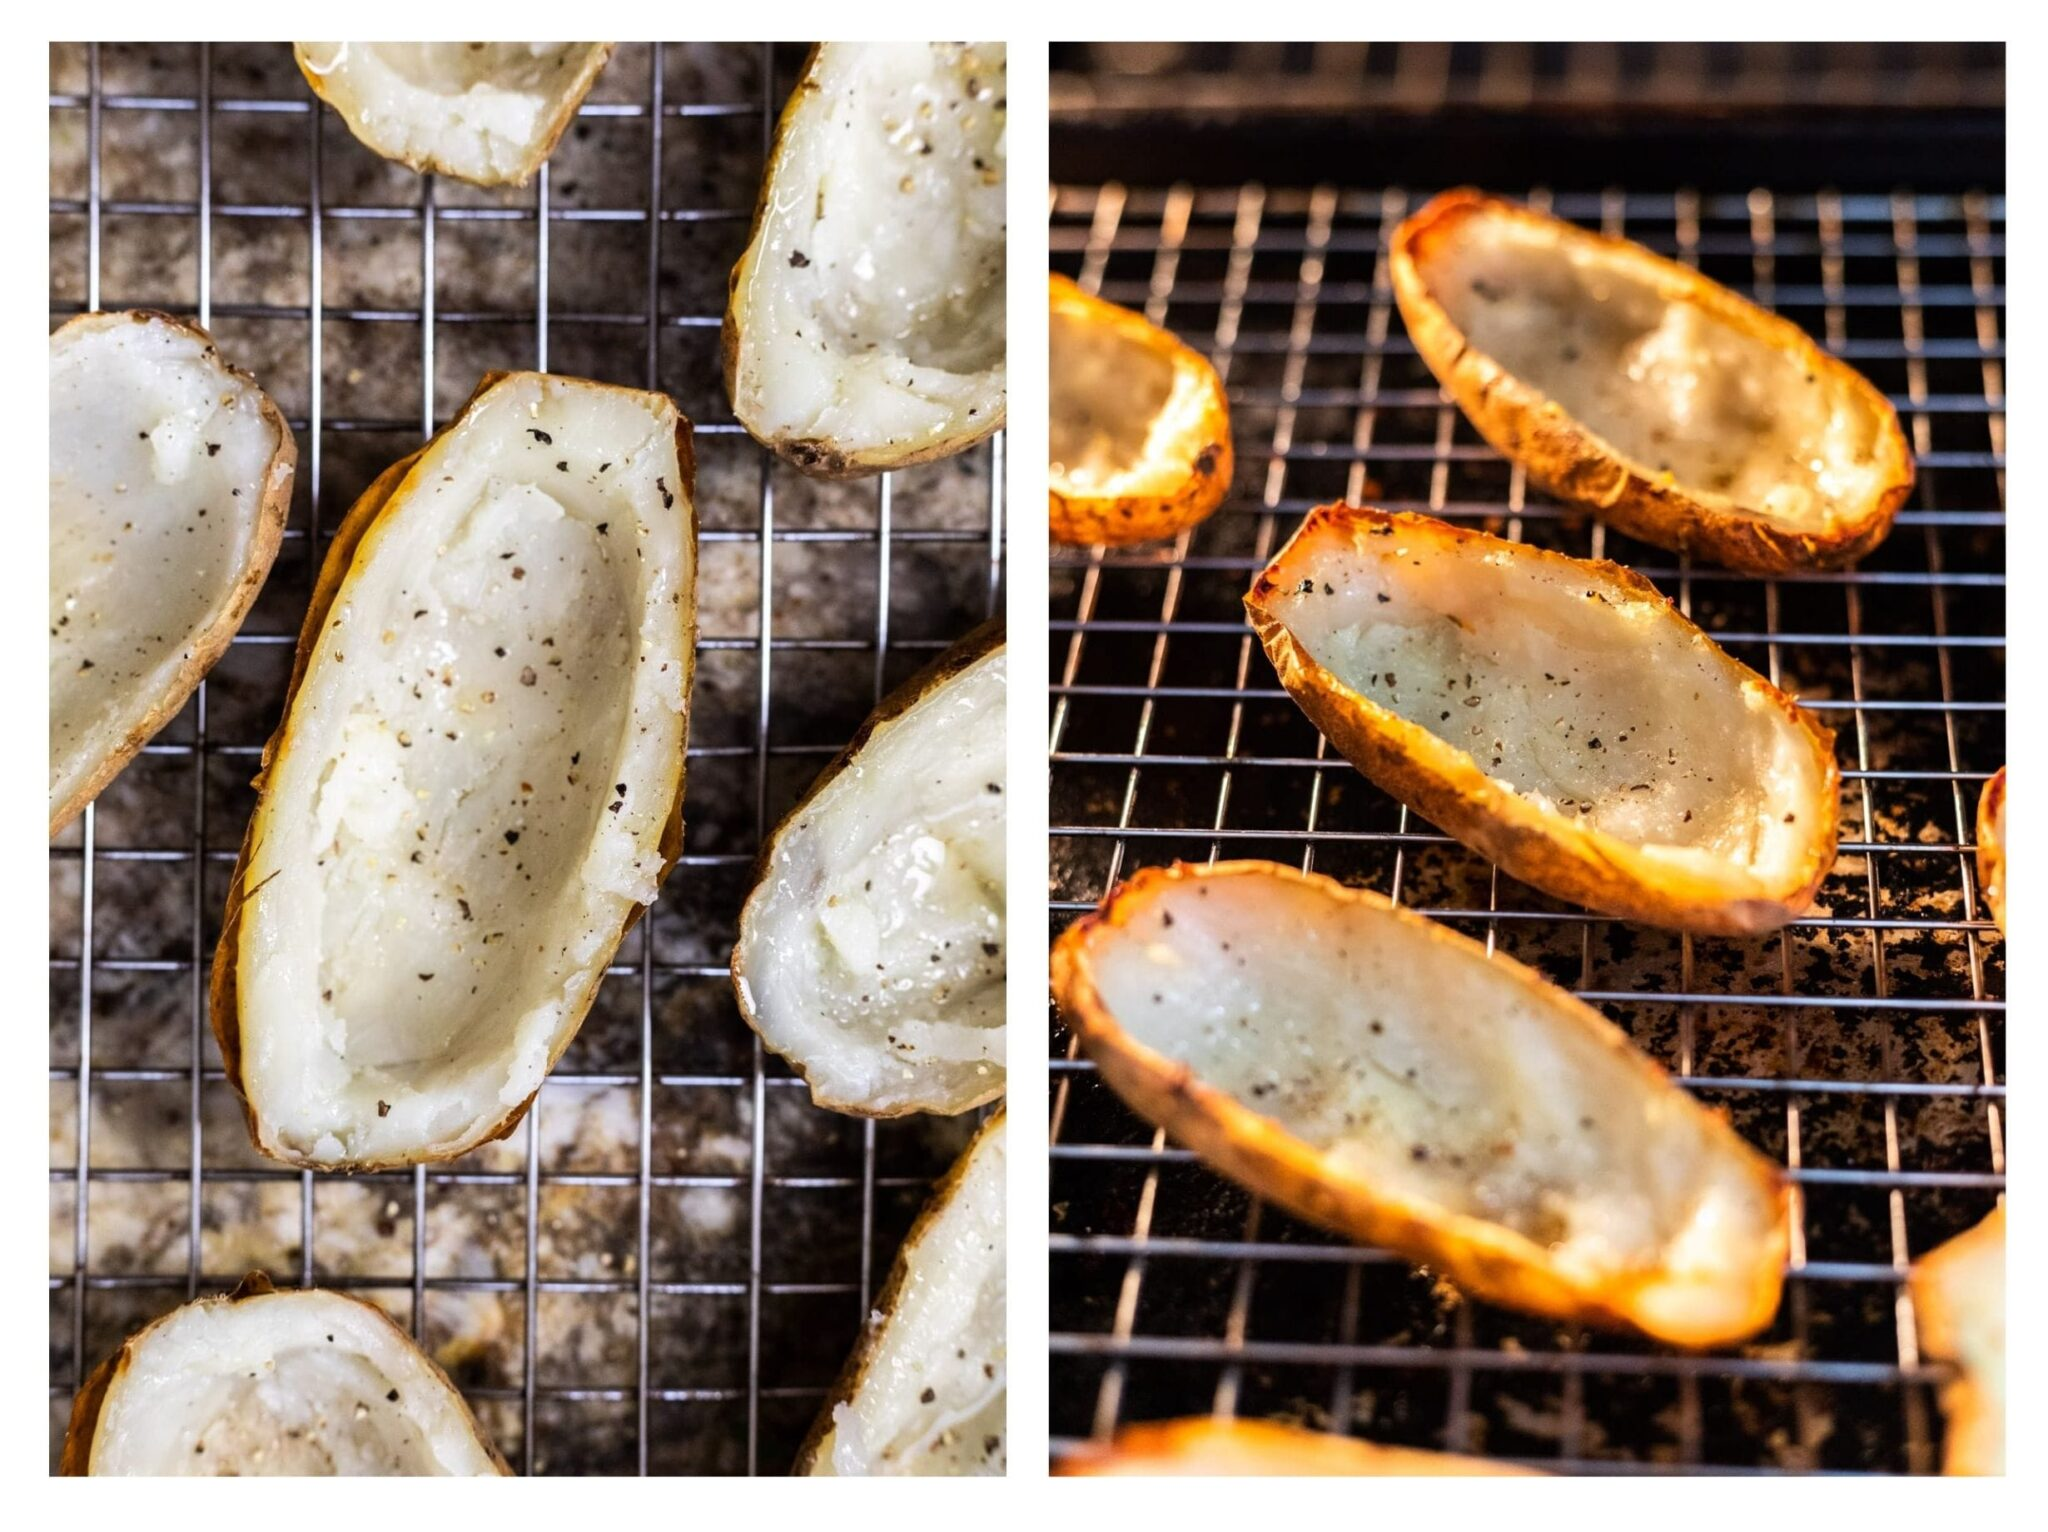 A photo collage of scooped and seasoned baked potato skins next to crisped skins baking in the oven.